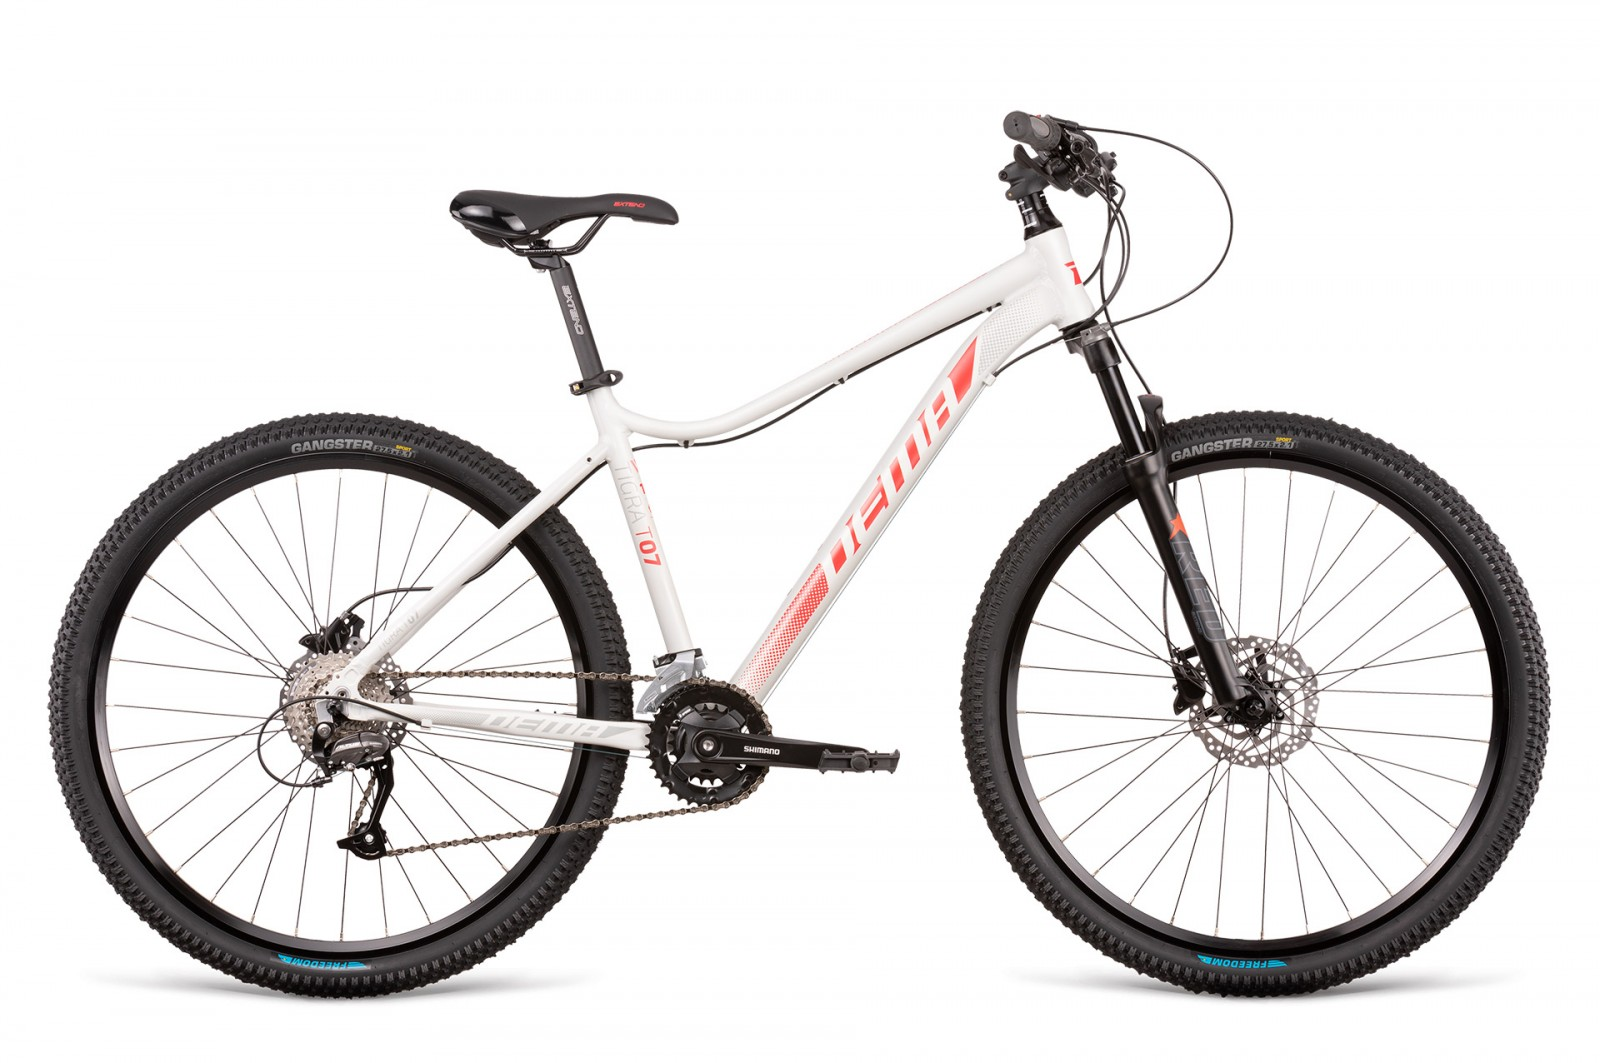 Dema TIGRA 7.0 light grey-red 27.5